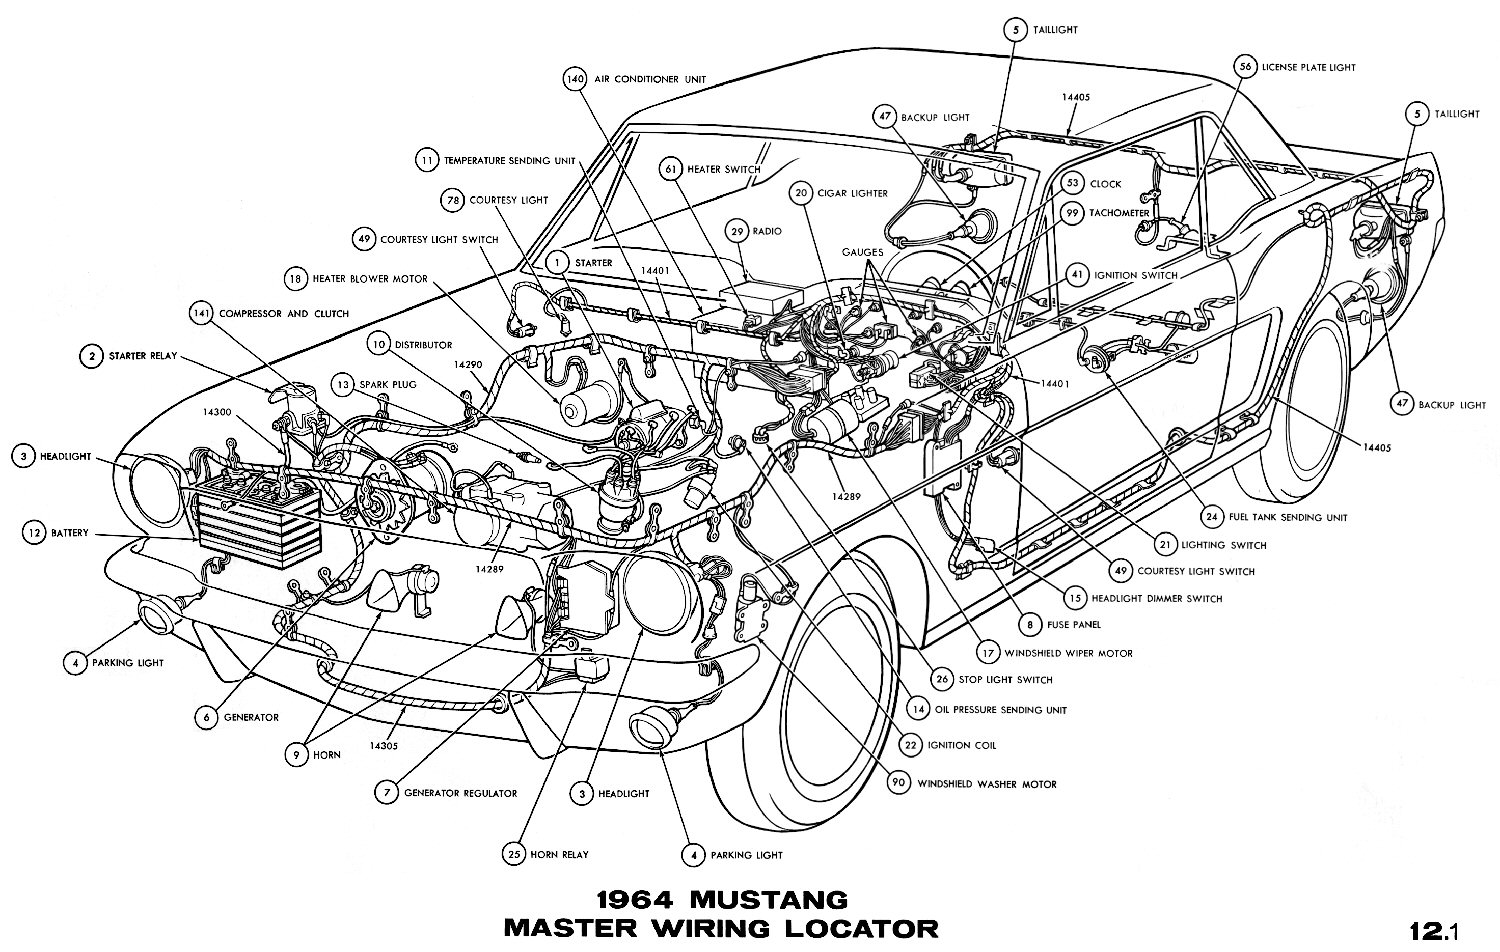 hight resolution of mustang parts diagram completed wiring diagrams 1969 mustang lighting diagram 1969 mustang engine diagram